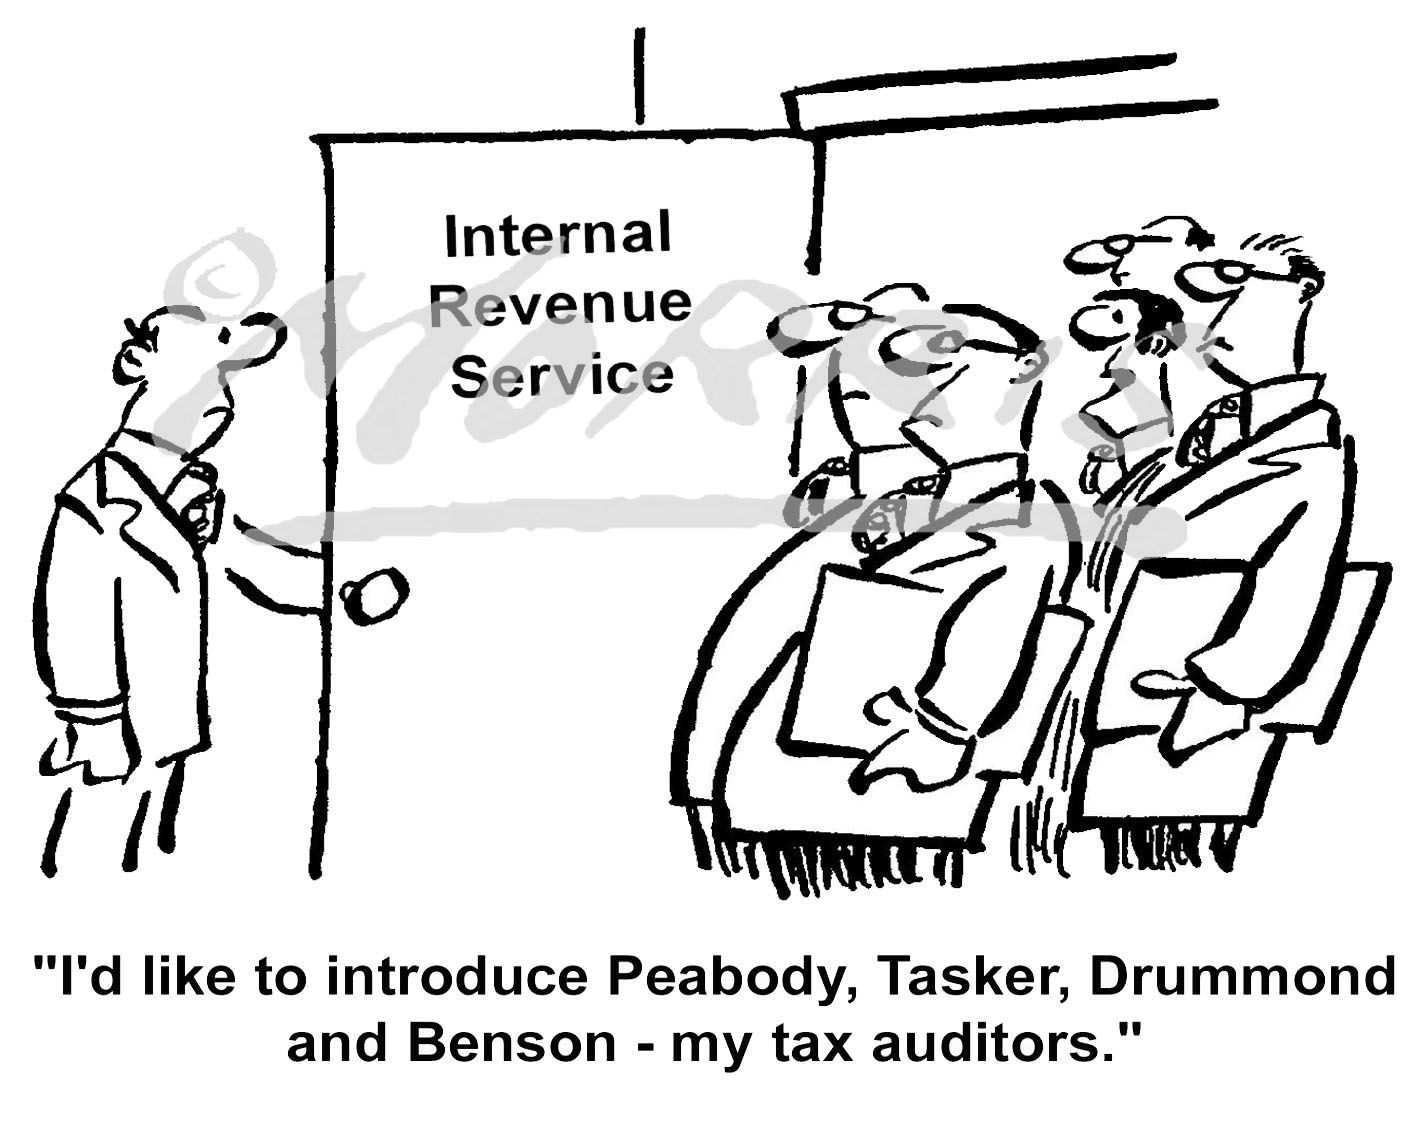 IRS accountants / auditors cartoon – Ref: 0600bwus